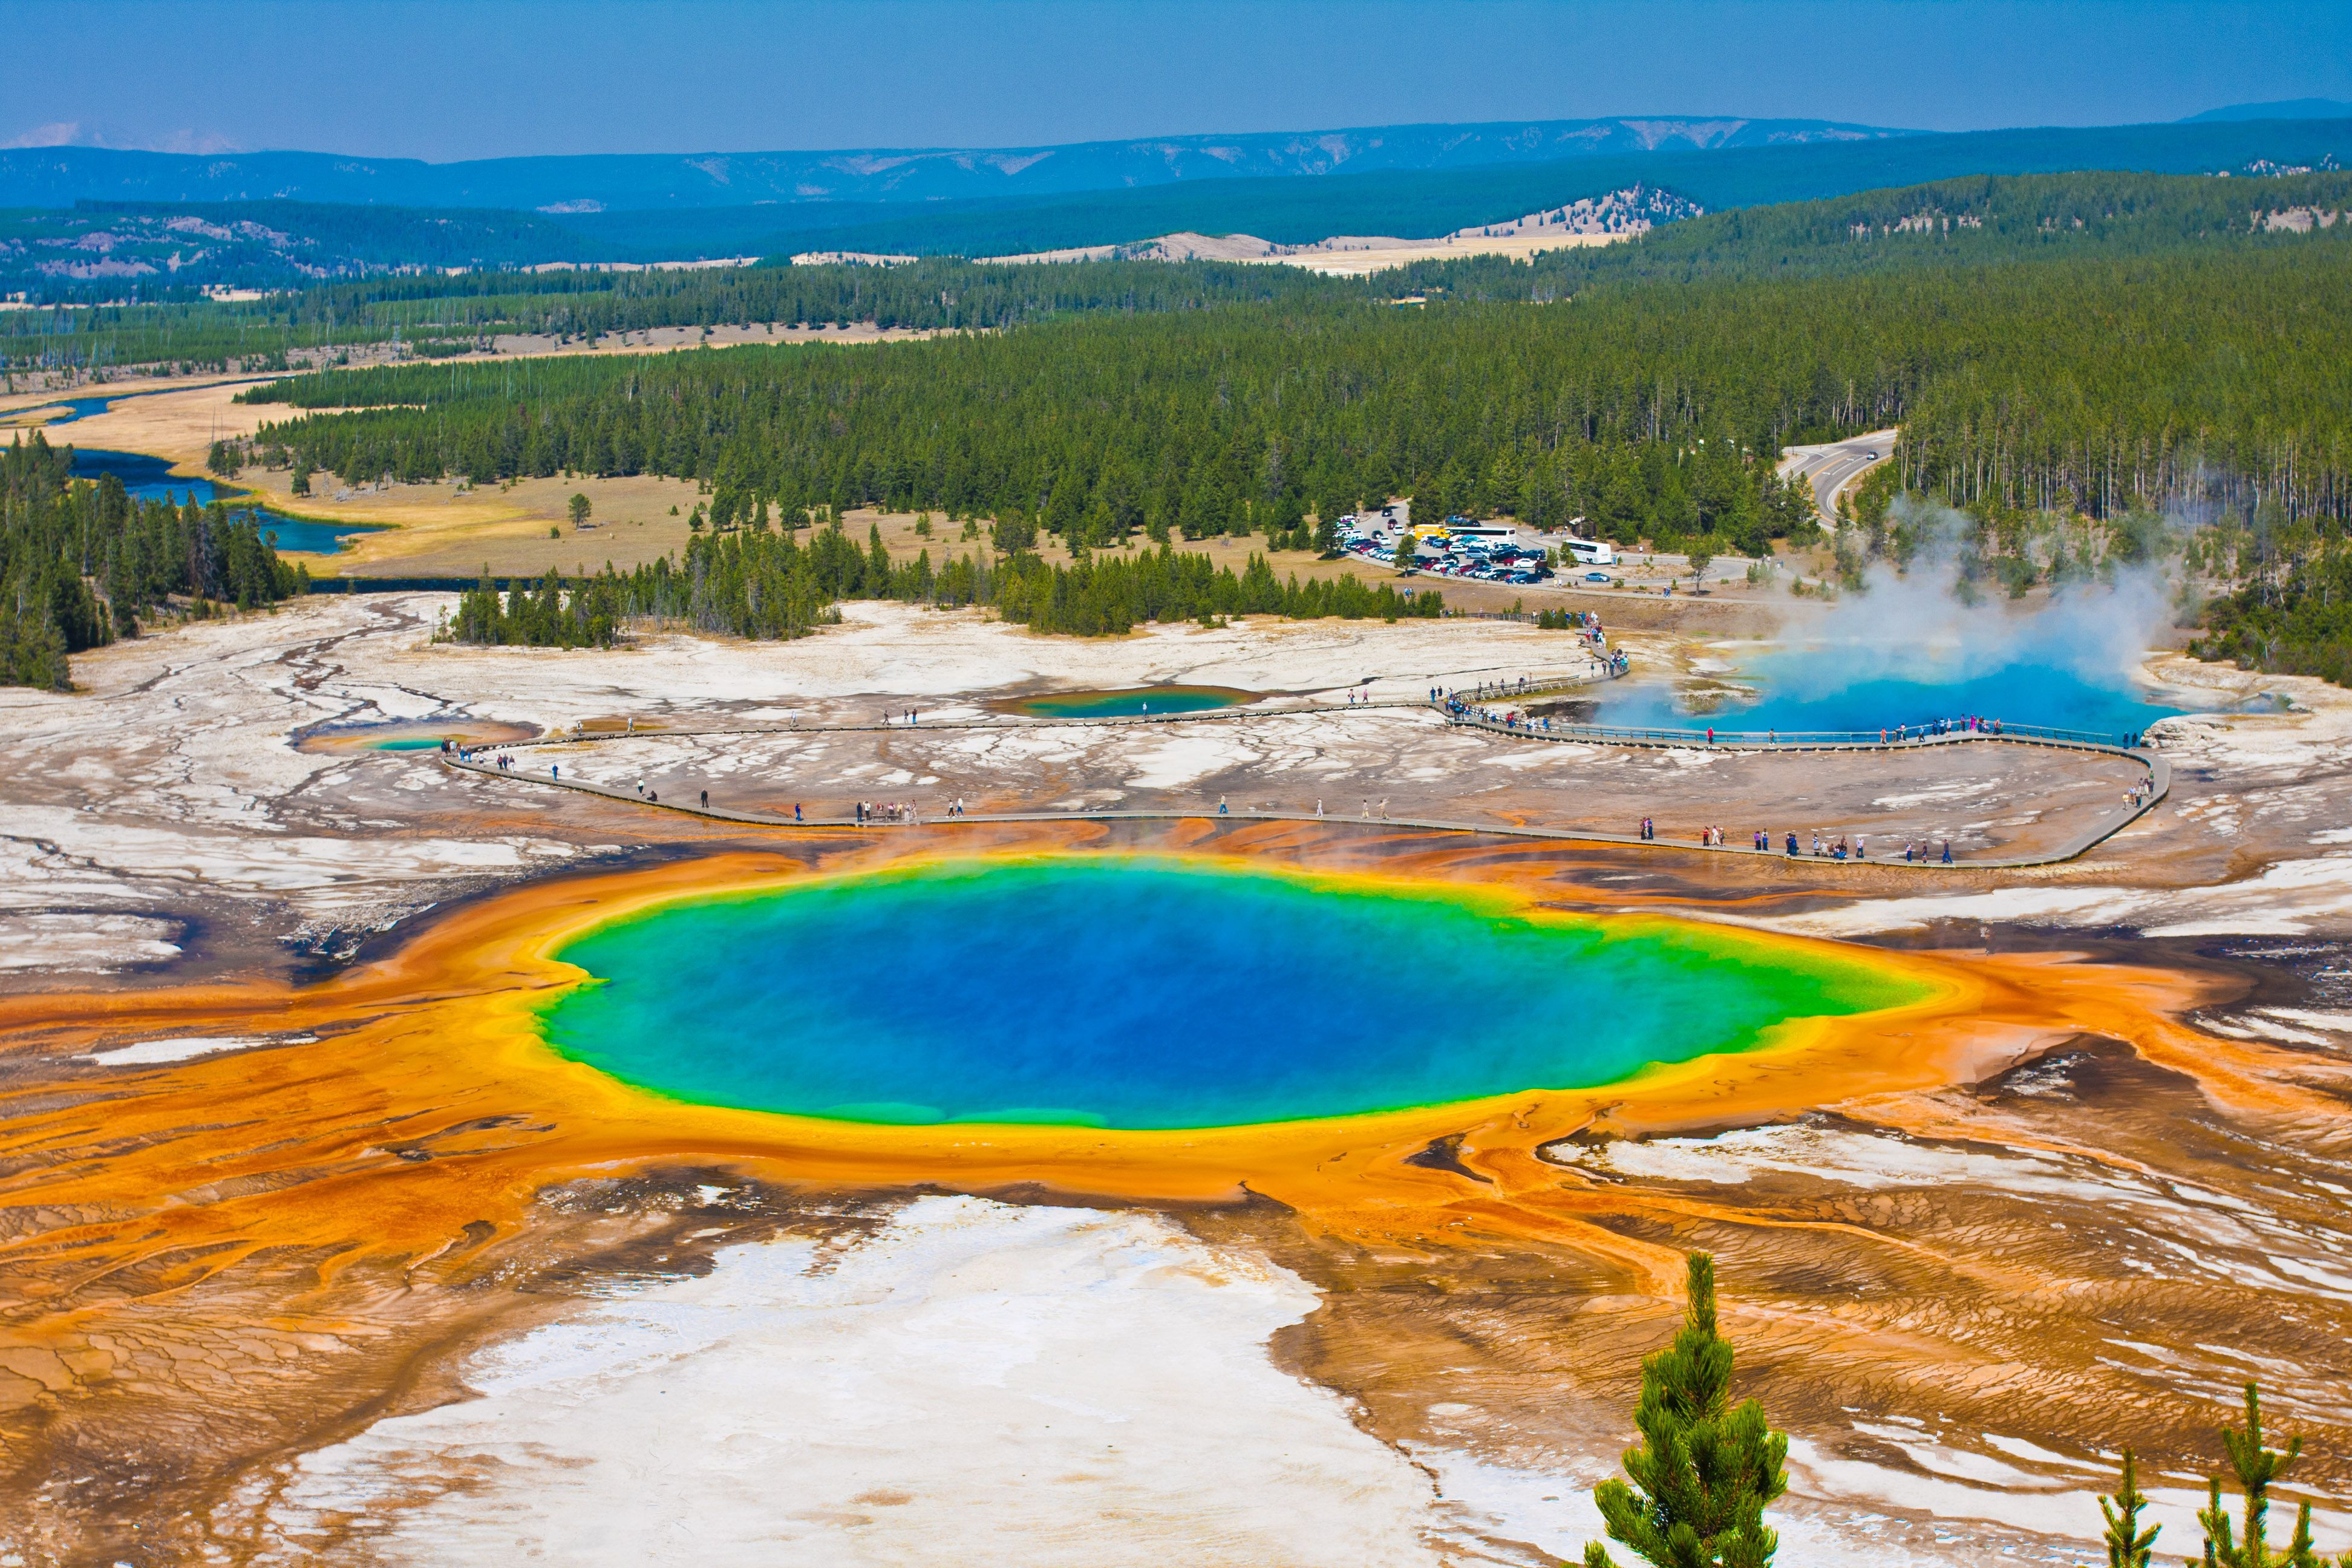 6. The Yellowstone Supervolcano Could Erupt